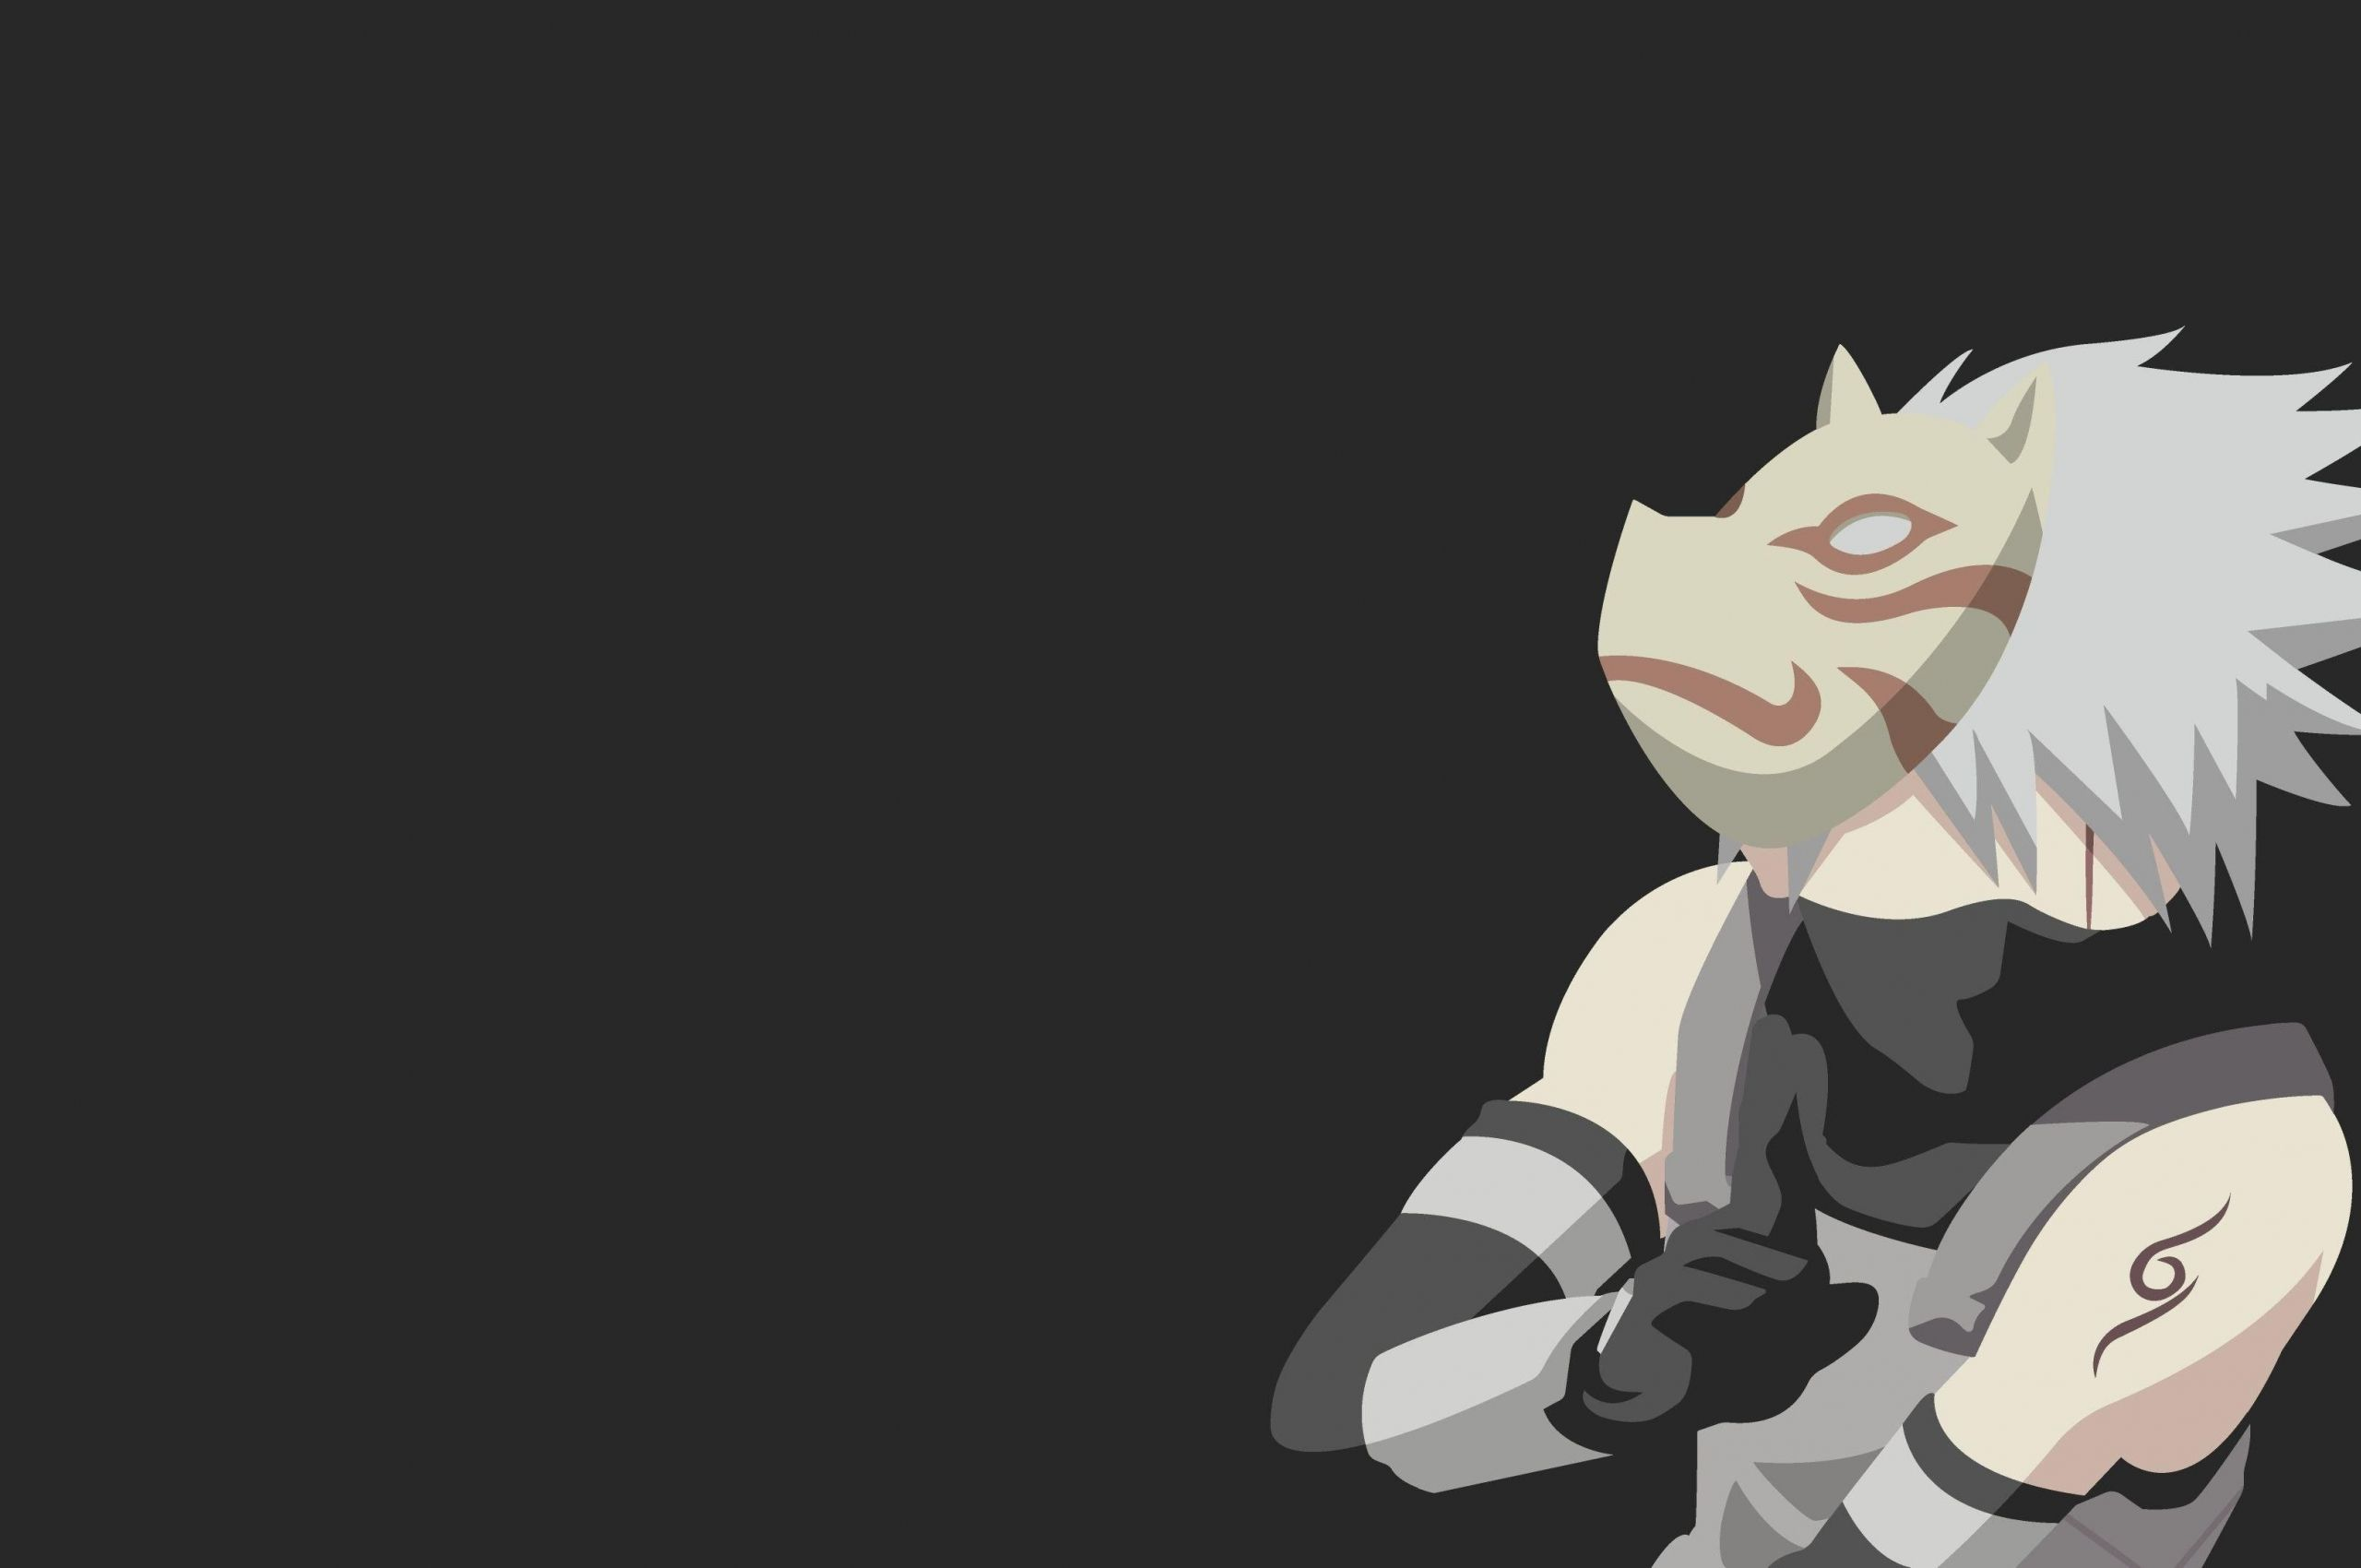 Free download Get Inspired For Kakashi Hatake Anbu Black Ops Wallpapers pictures [3840x2160] for your Desktop, Mobile & Tablet